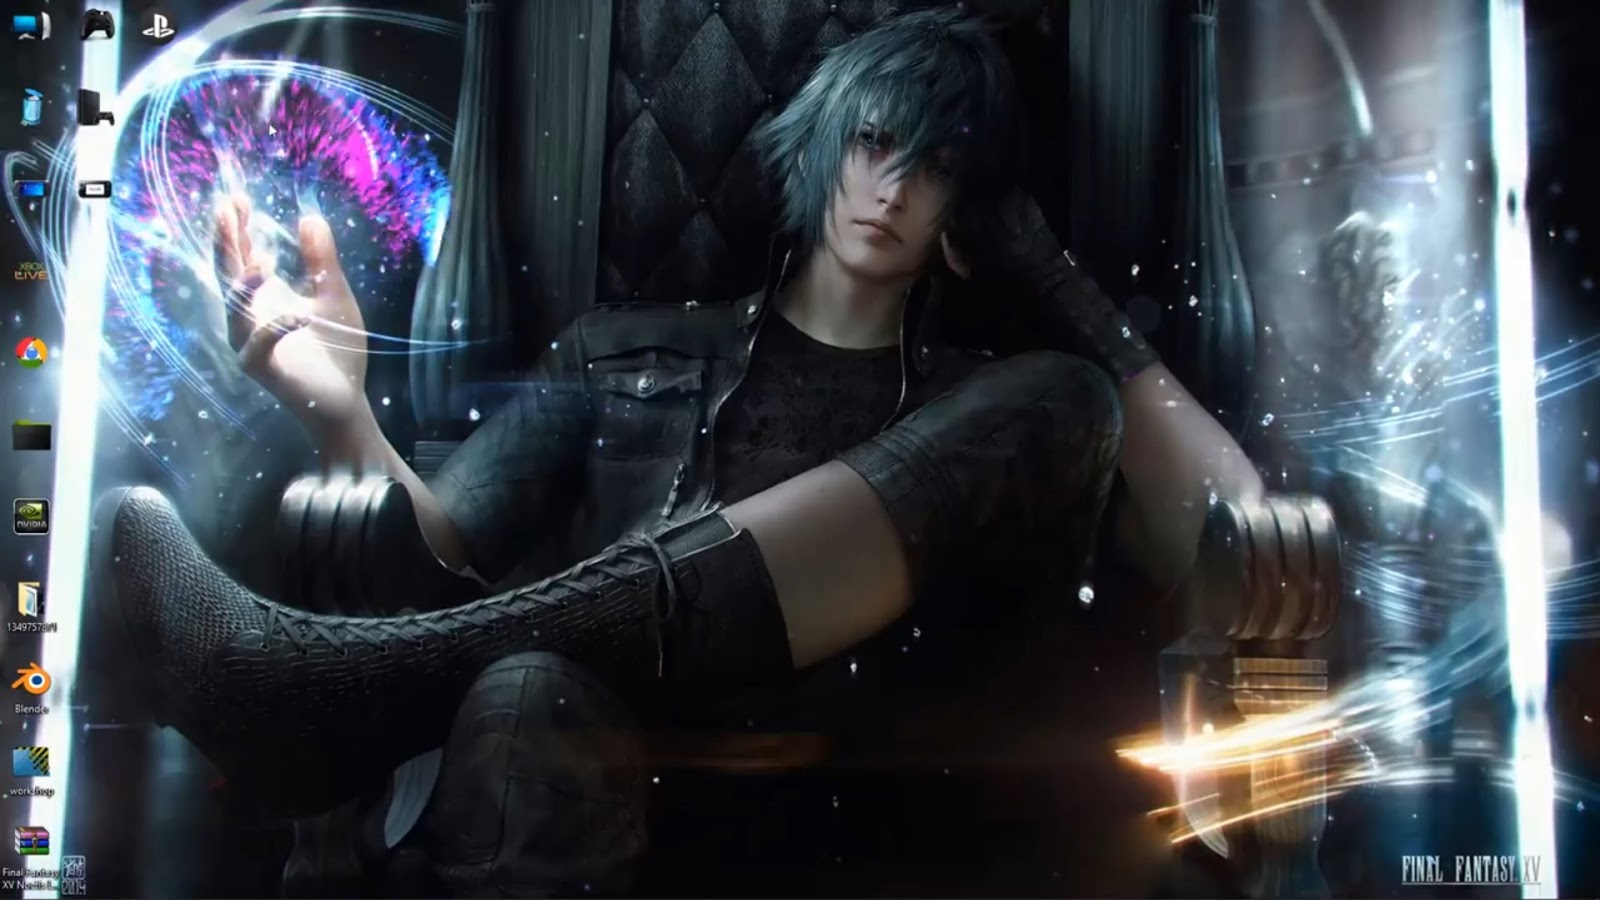 Final Fantasy Xv Wallpapers The Best 79 Images In 2018: Final Fantasy XV Noctis Lucis Caelum Live Wallpaper Free